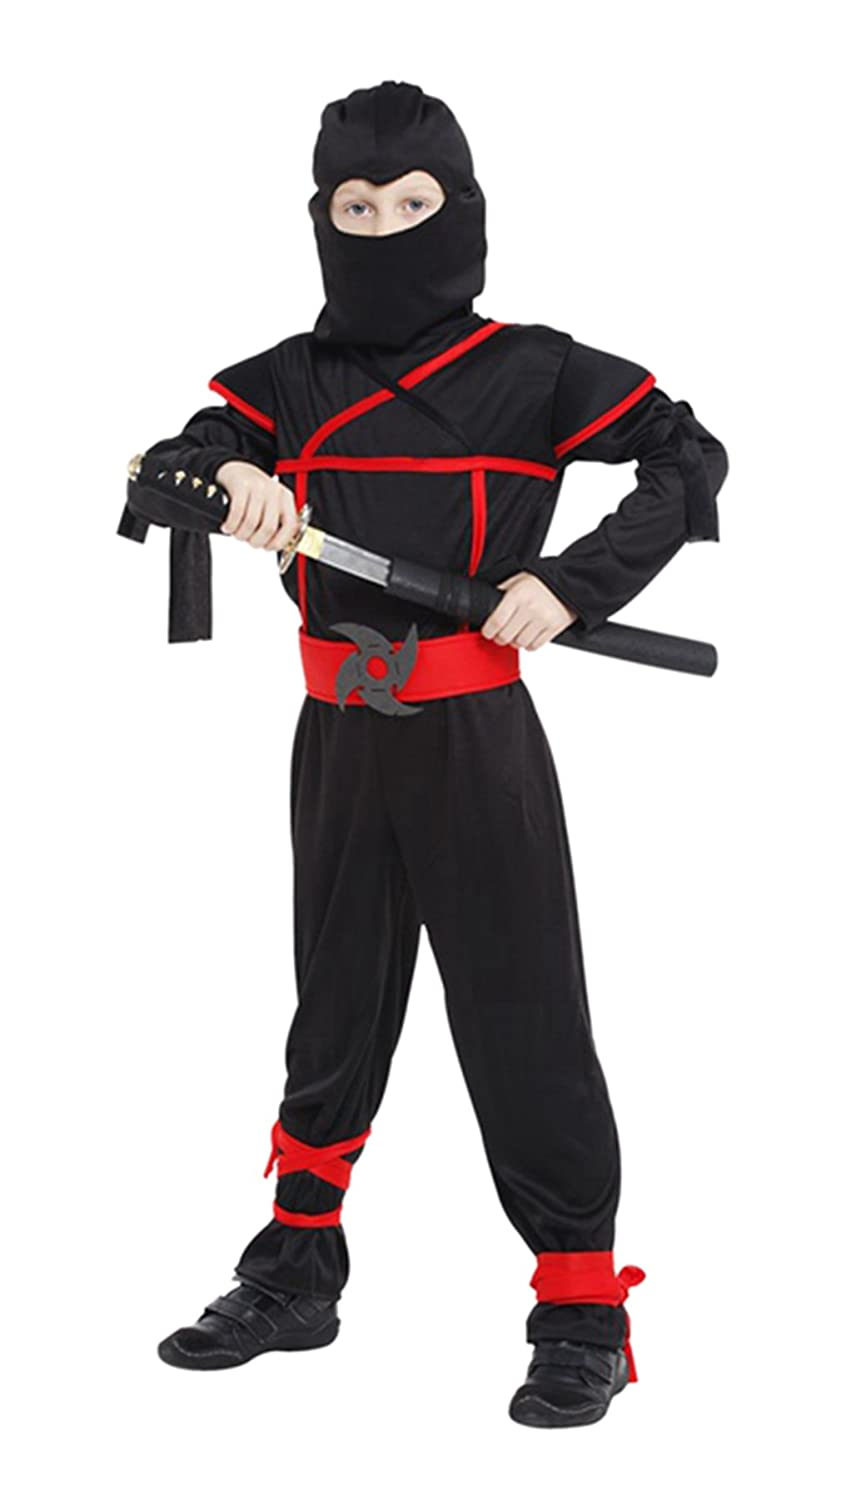 Amazon.com: La Vogue Children Boys Halloween Costume Stealth ...